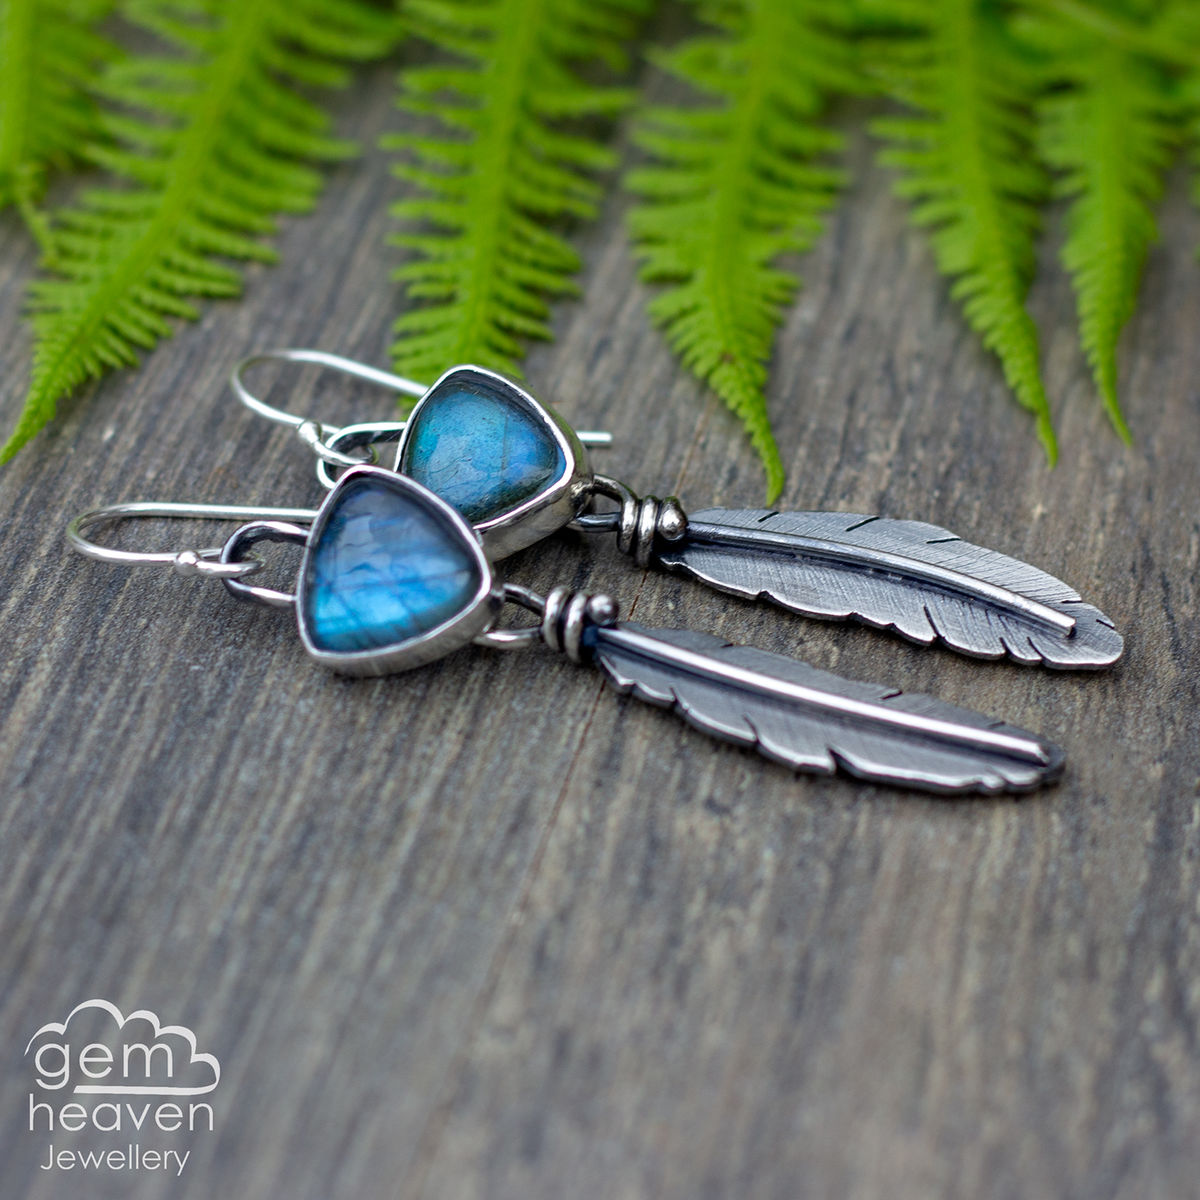 Morrigan Series Earrings - product images  of